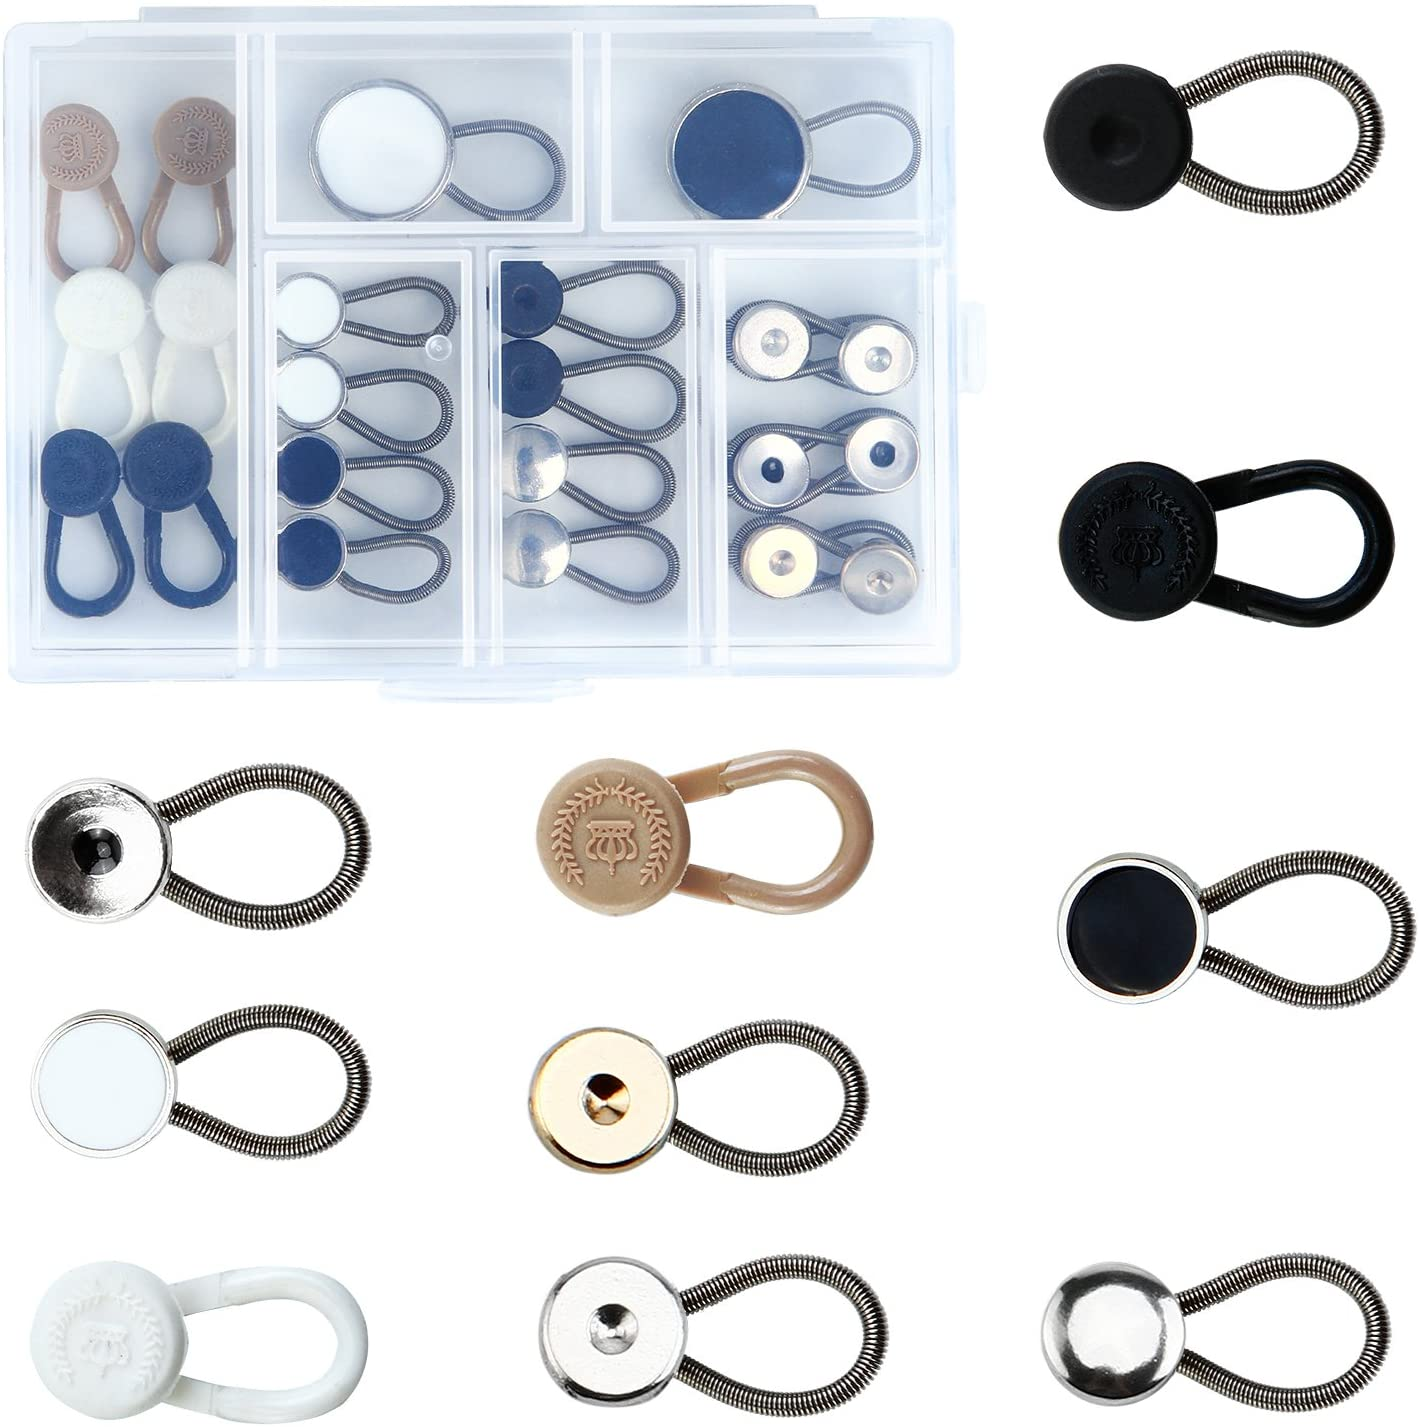 Aneco 22 Pieces Waist Extender Pants Extender Buttons Extender with Plastic Storage Set for Pants, Jeans, Trousers and Skirt